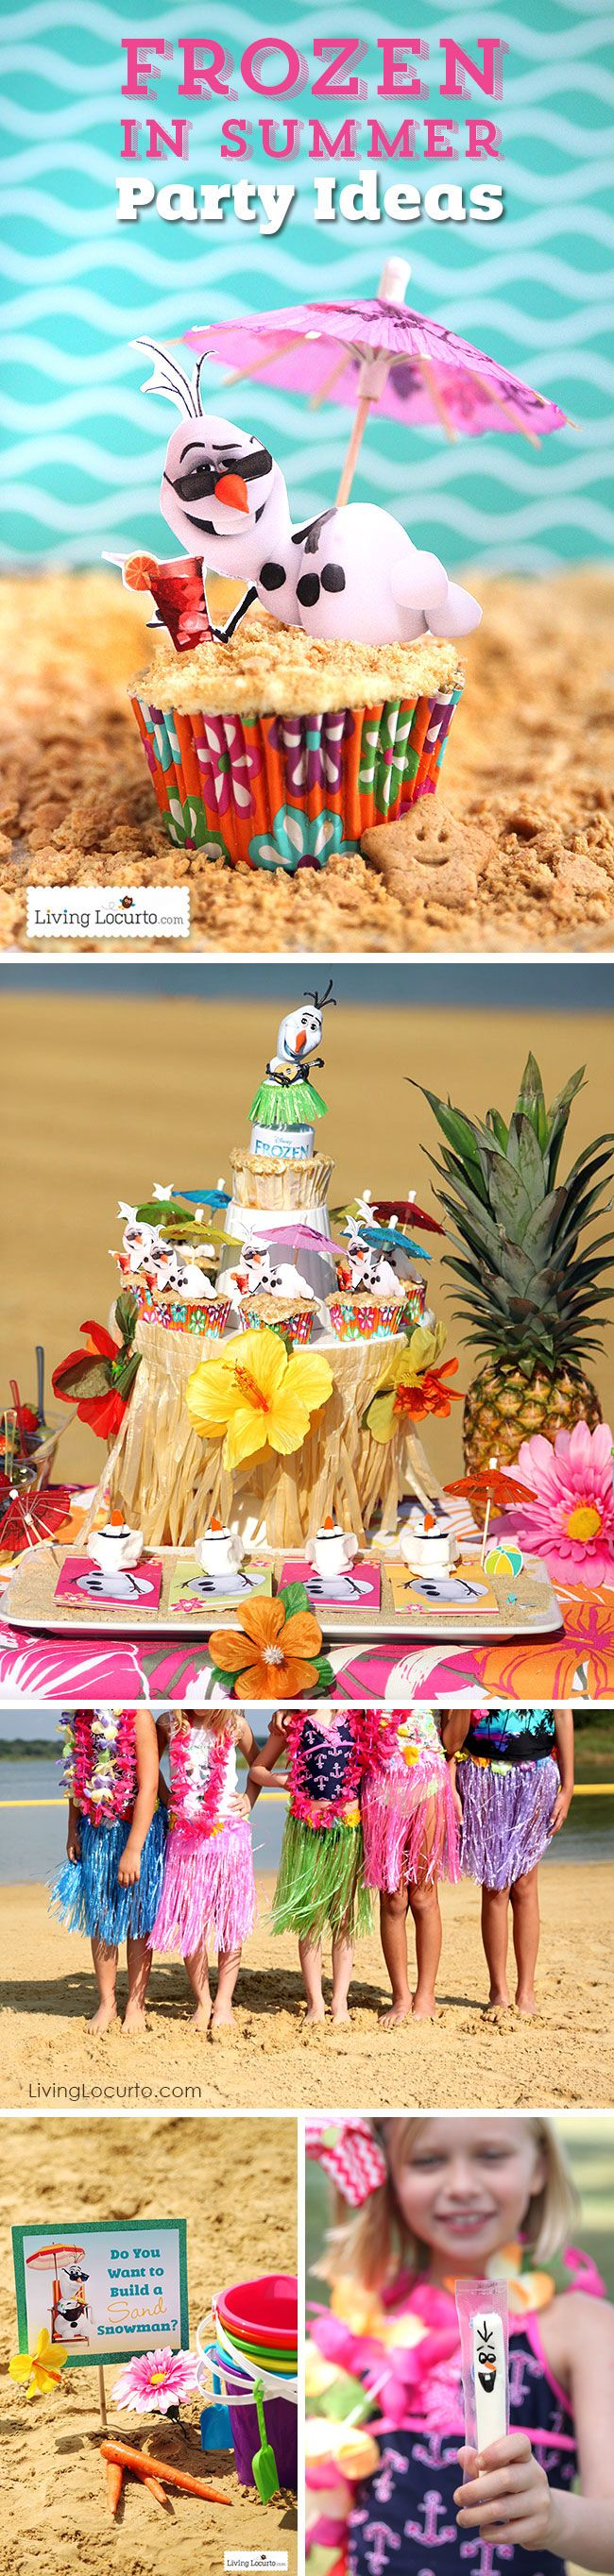 Frozen in Summer Birthday Party Ideas! Themed after the Disney song, Olaf finally gets to enjoy the beach! Fun food ideas, cupcakes, printables and kid games for the beach, luau or pool party. See more at LivingLocurto.com